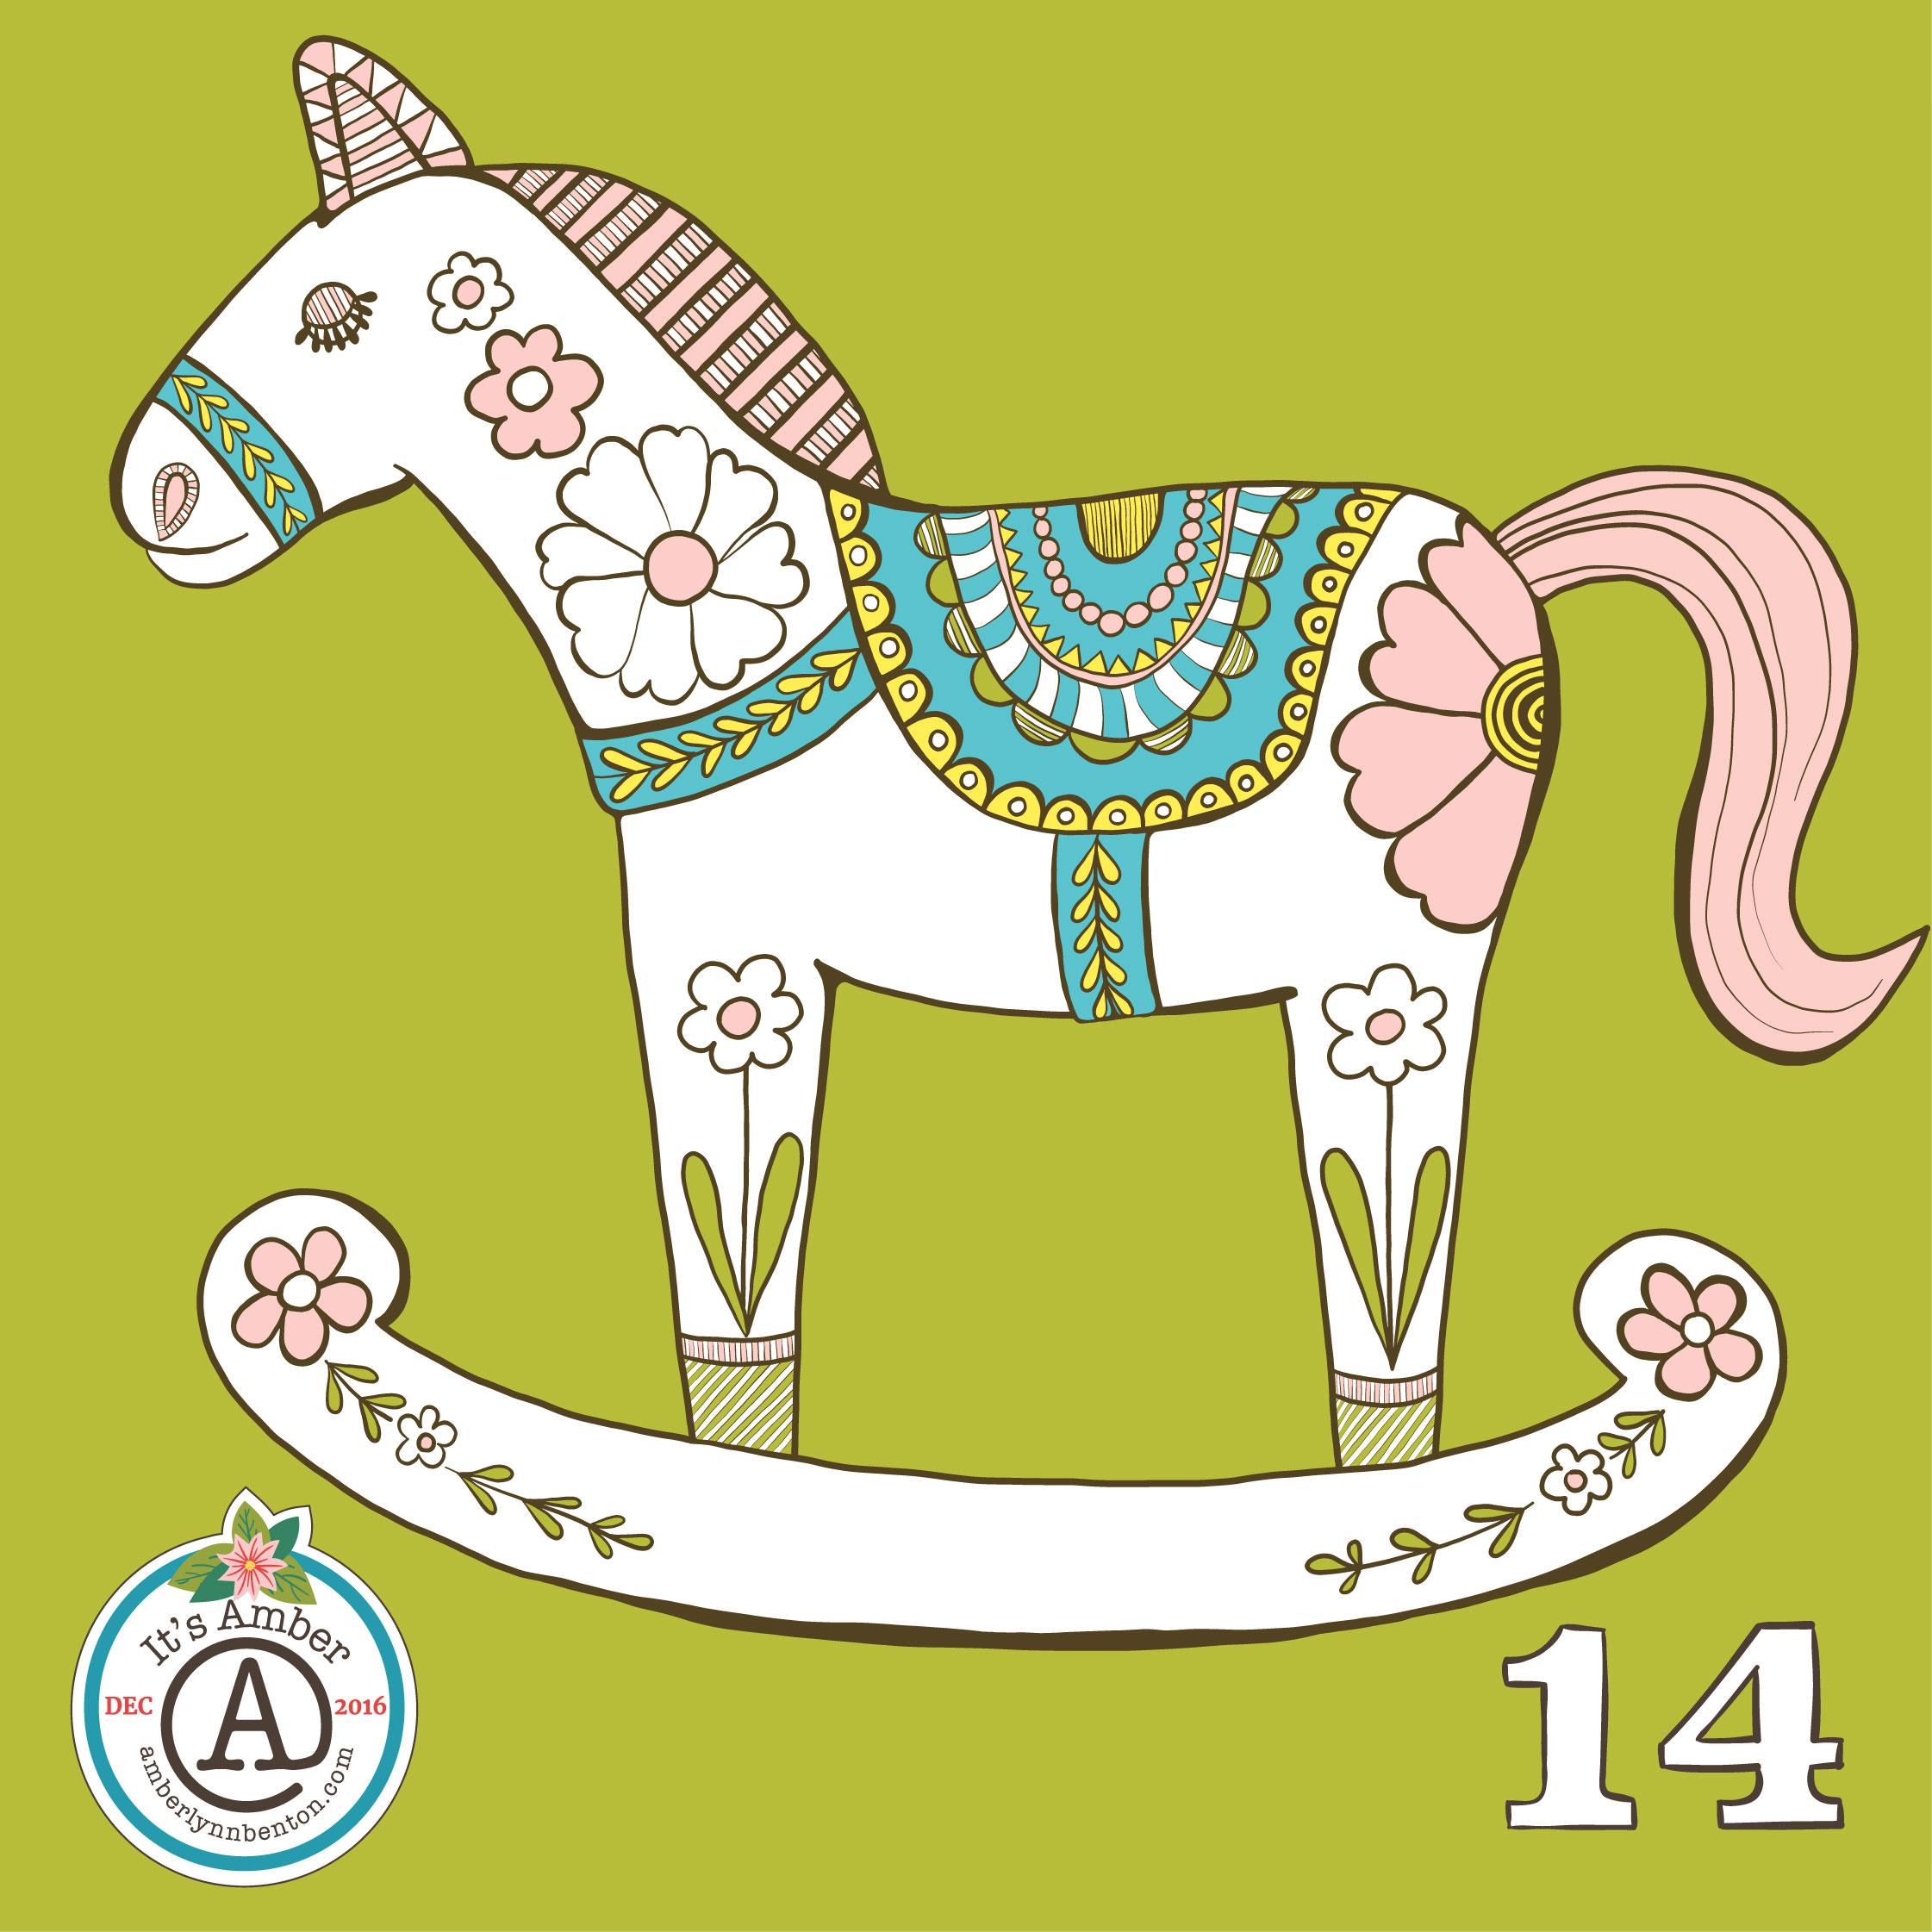 Painted Rocking Horse by Amber Lynn Benton for #ItsAdvent2016